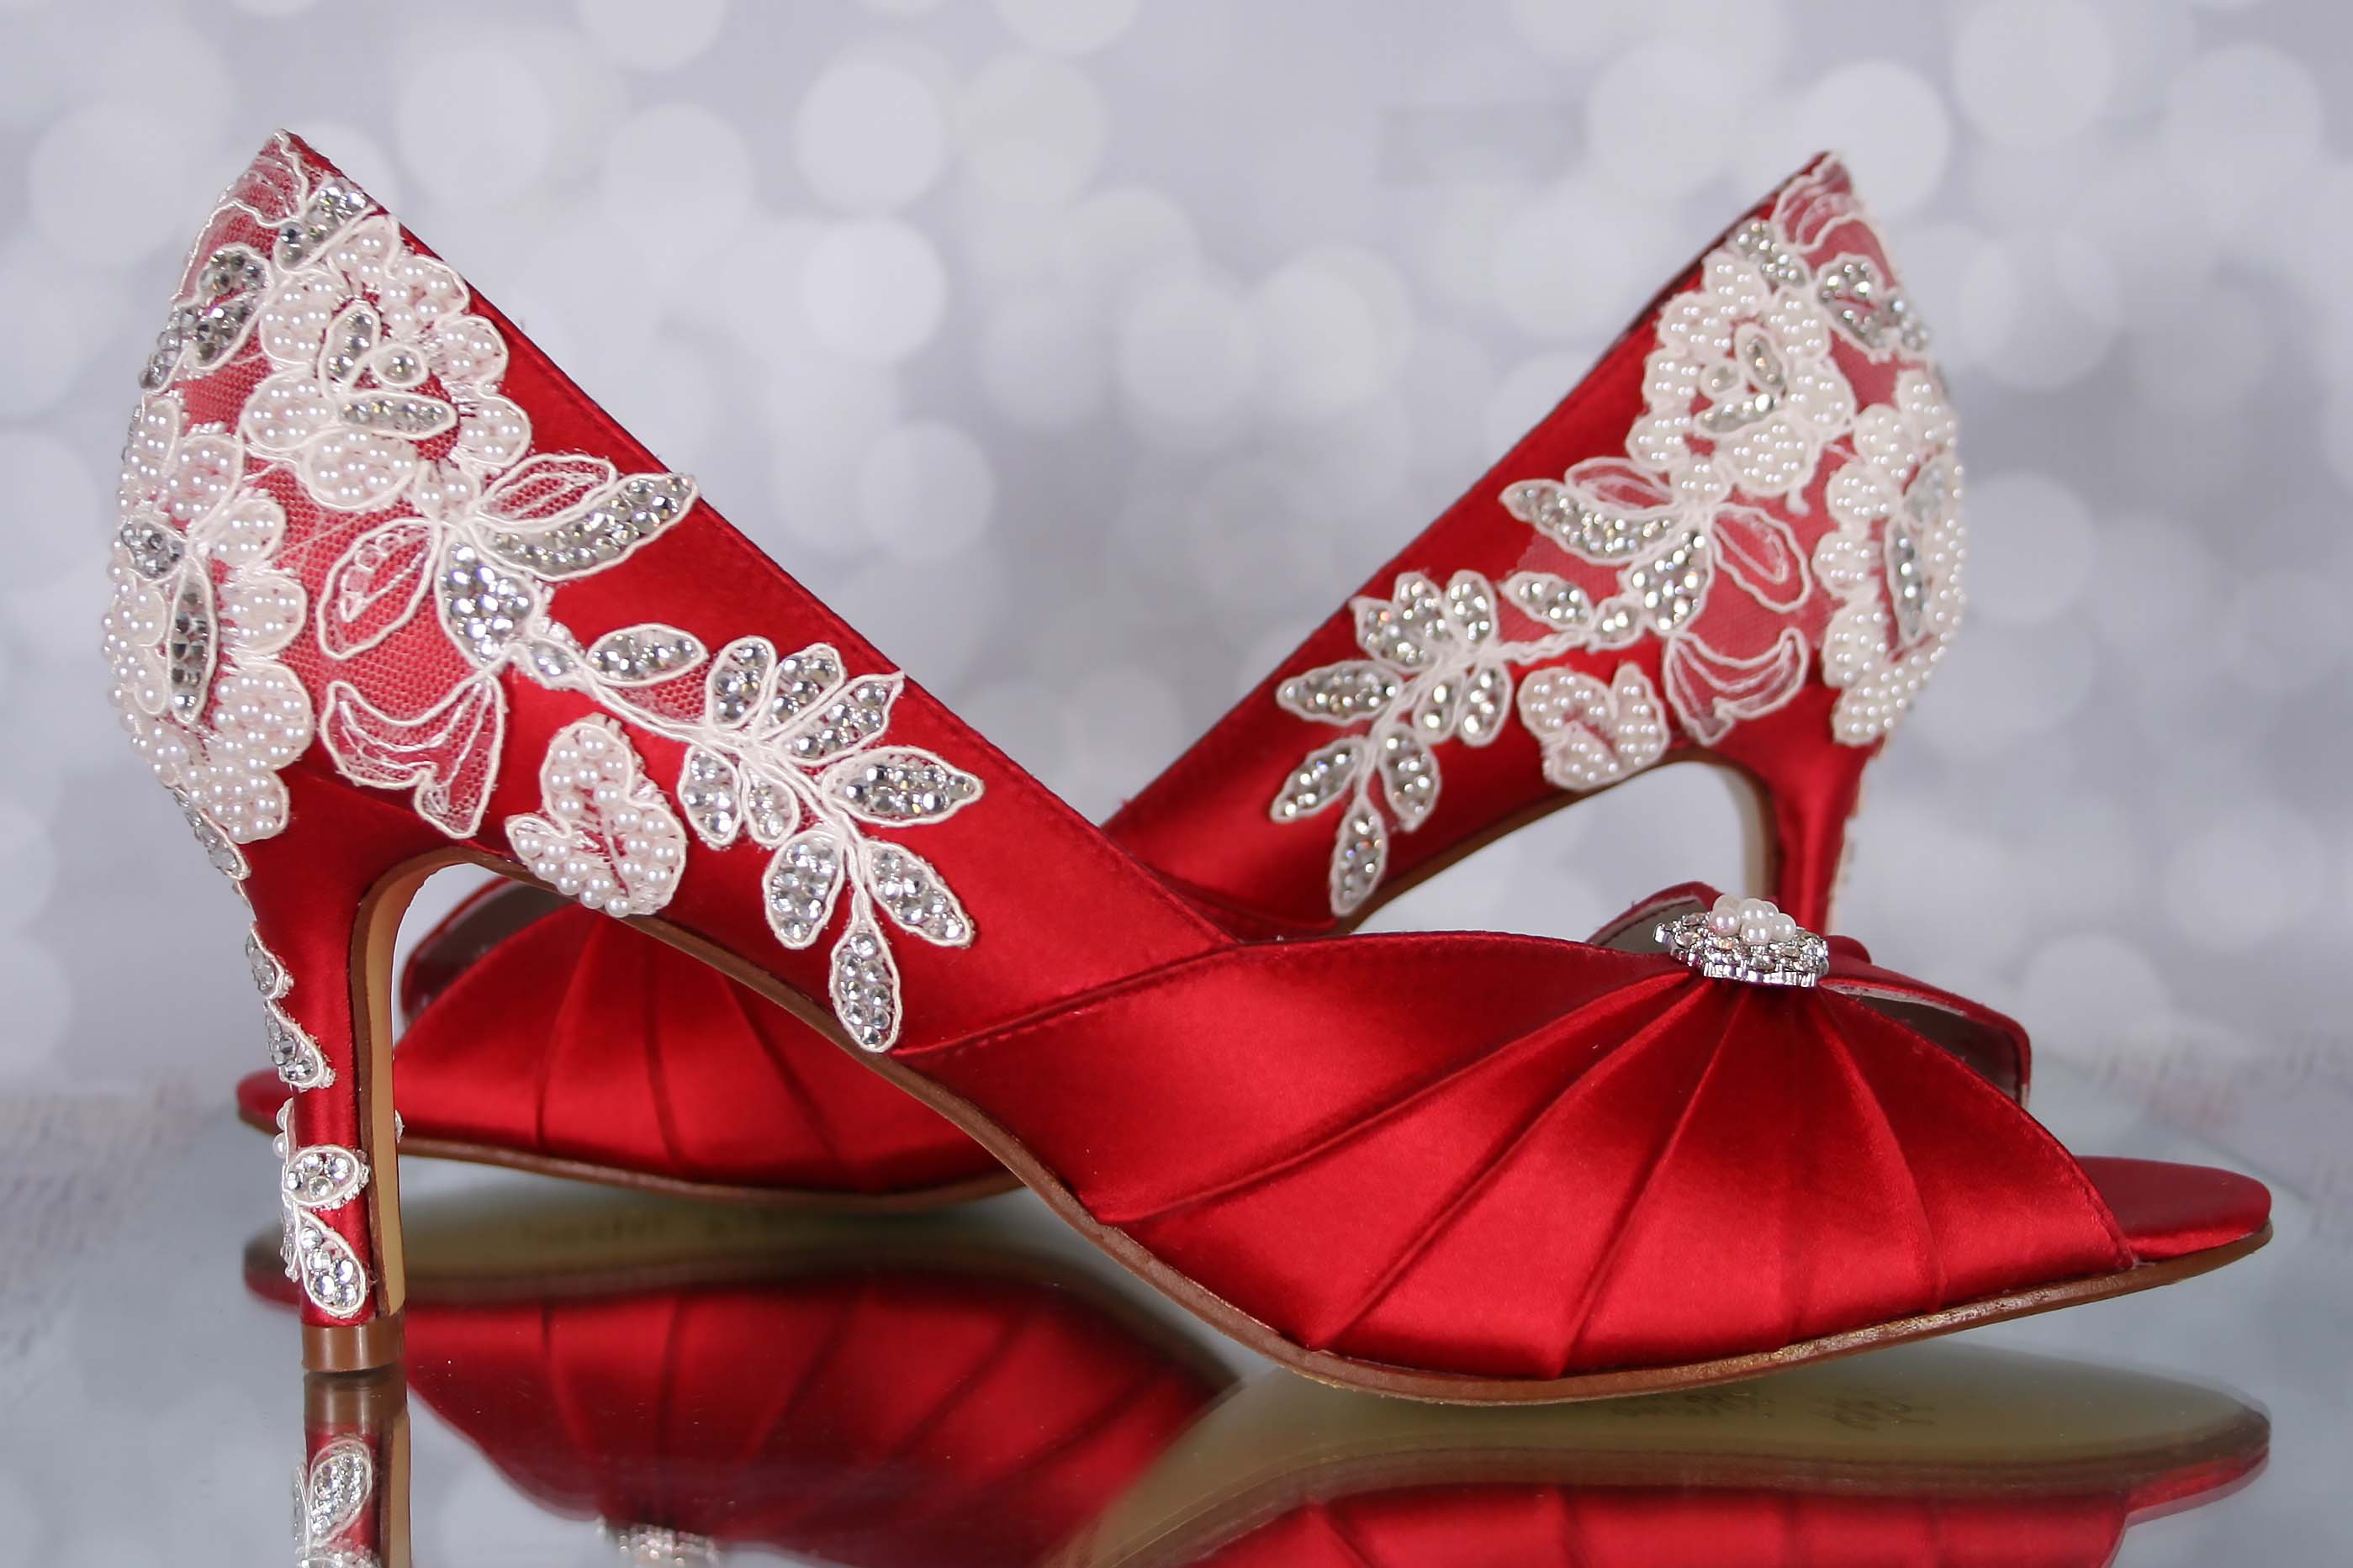 fdfc705ad27 Red Wedding Shoes: Red Peep Toe Bridal Heels with an Ivory Lace Heel ...